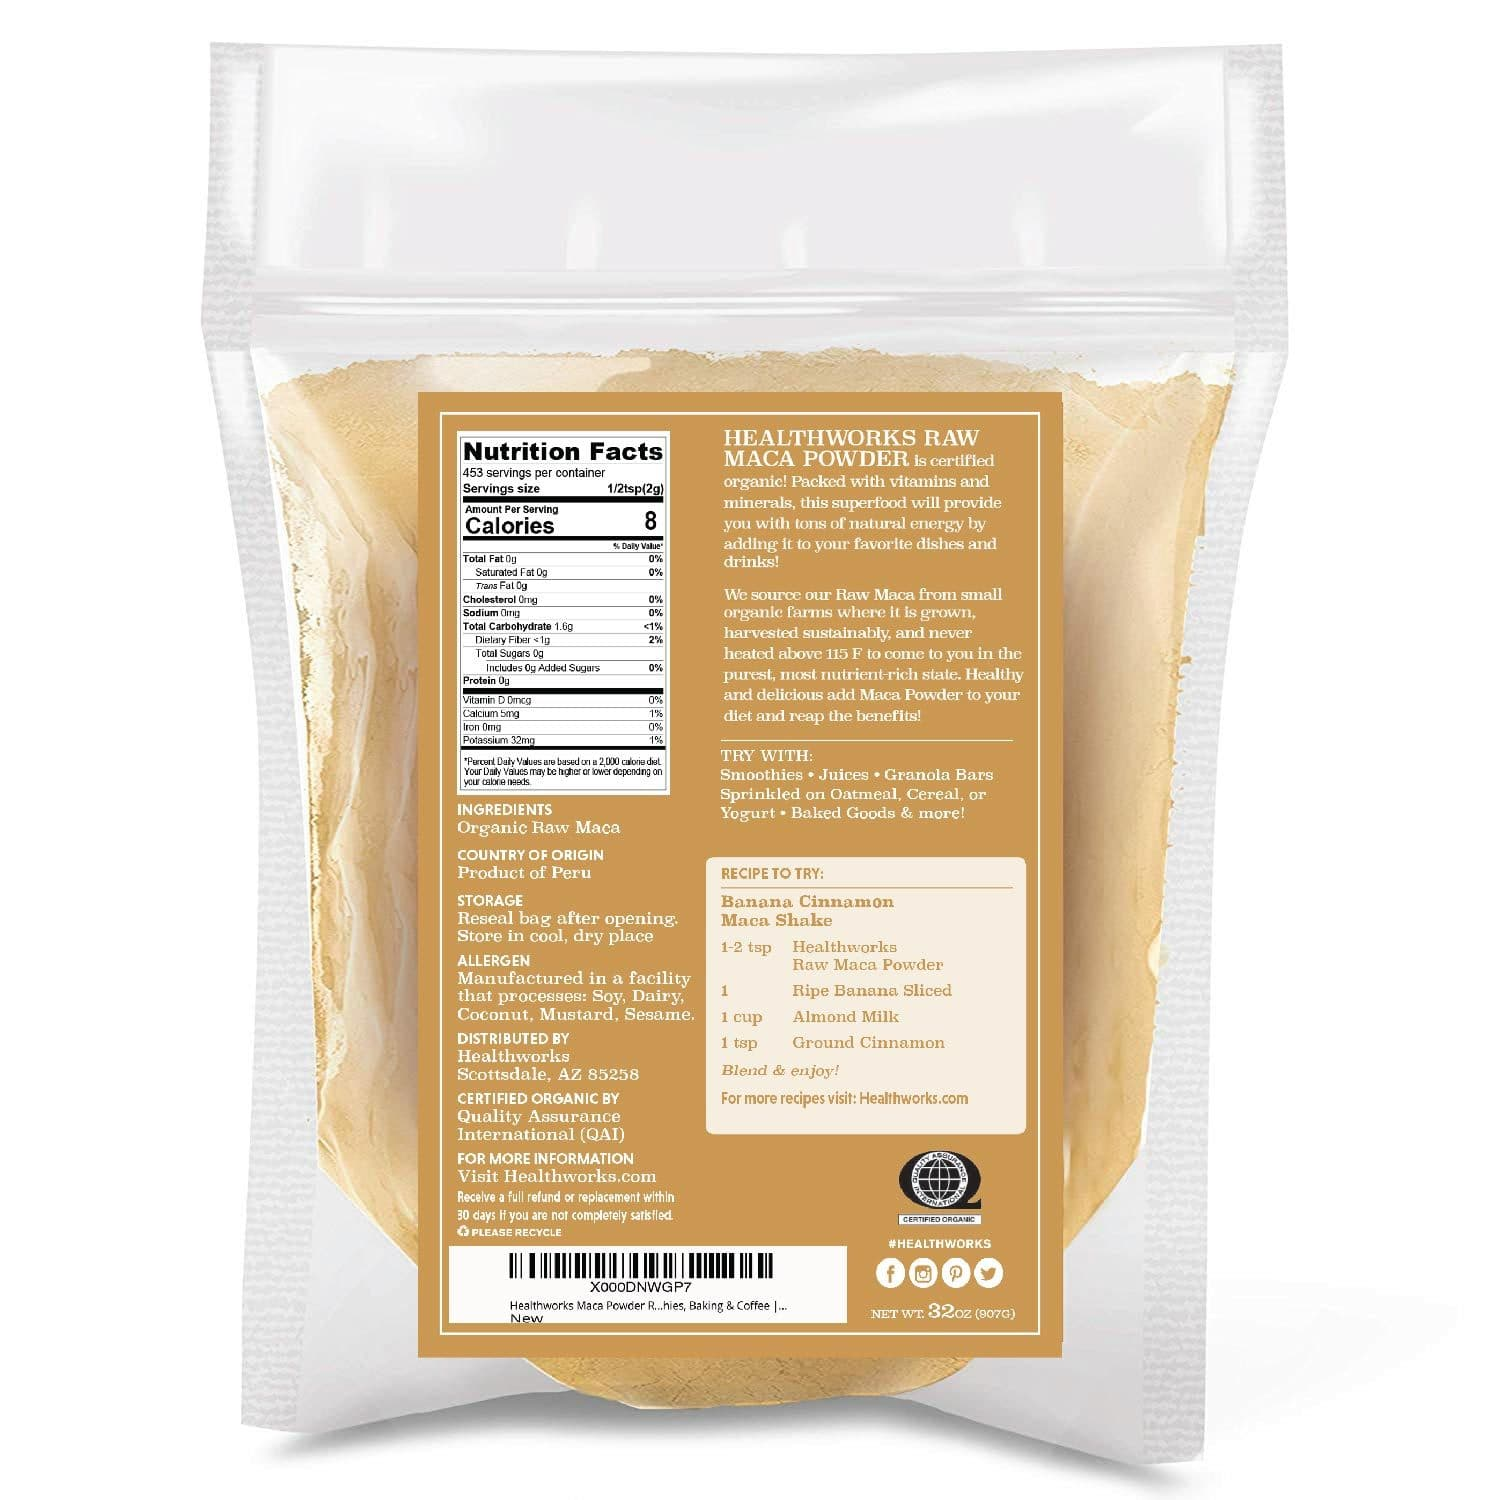 Healthworks Maca Powder Raw Organic, 2lb - Healthworks Superfood Organic